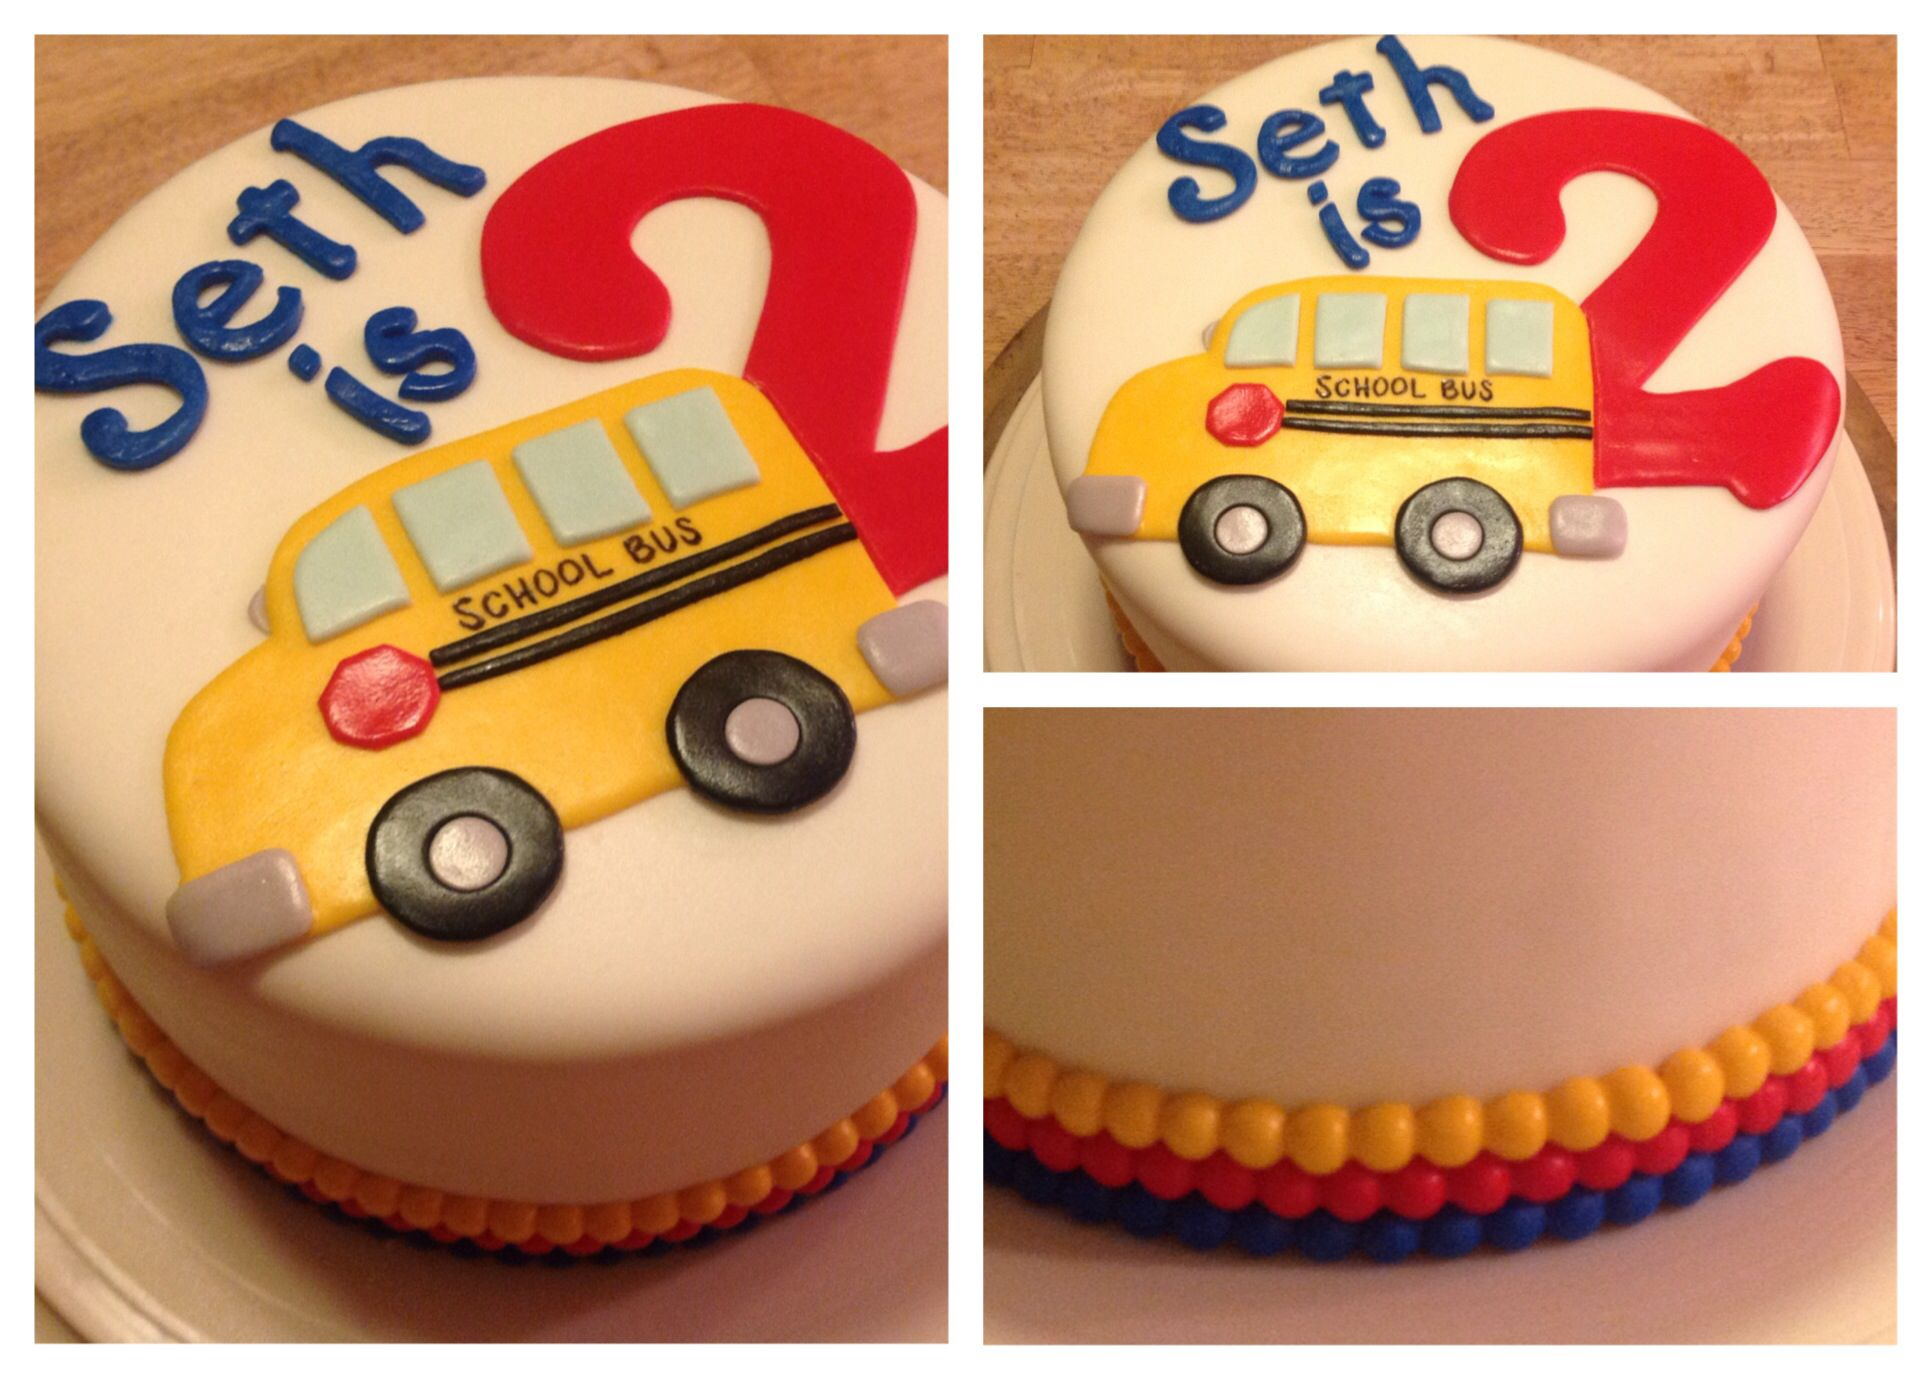 Seths School Bus Birthday Cake This Is A Surprise On The Inside